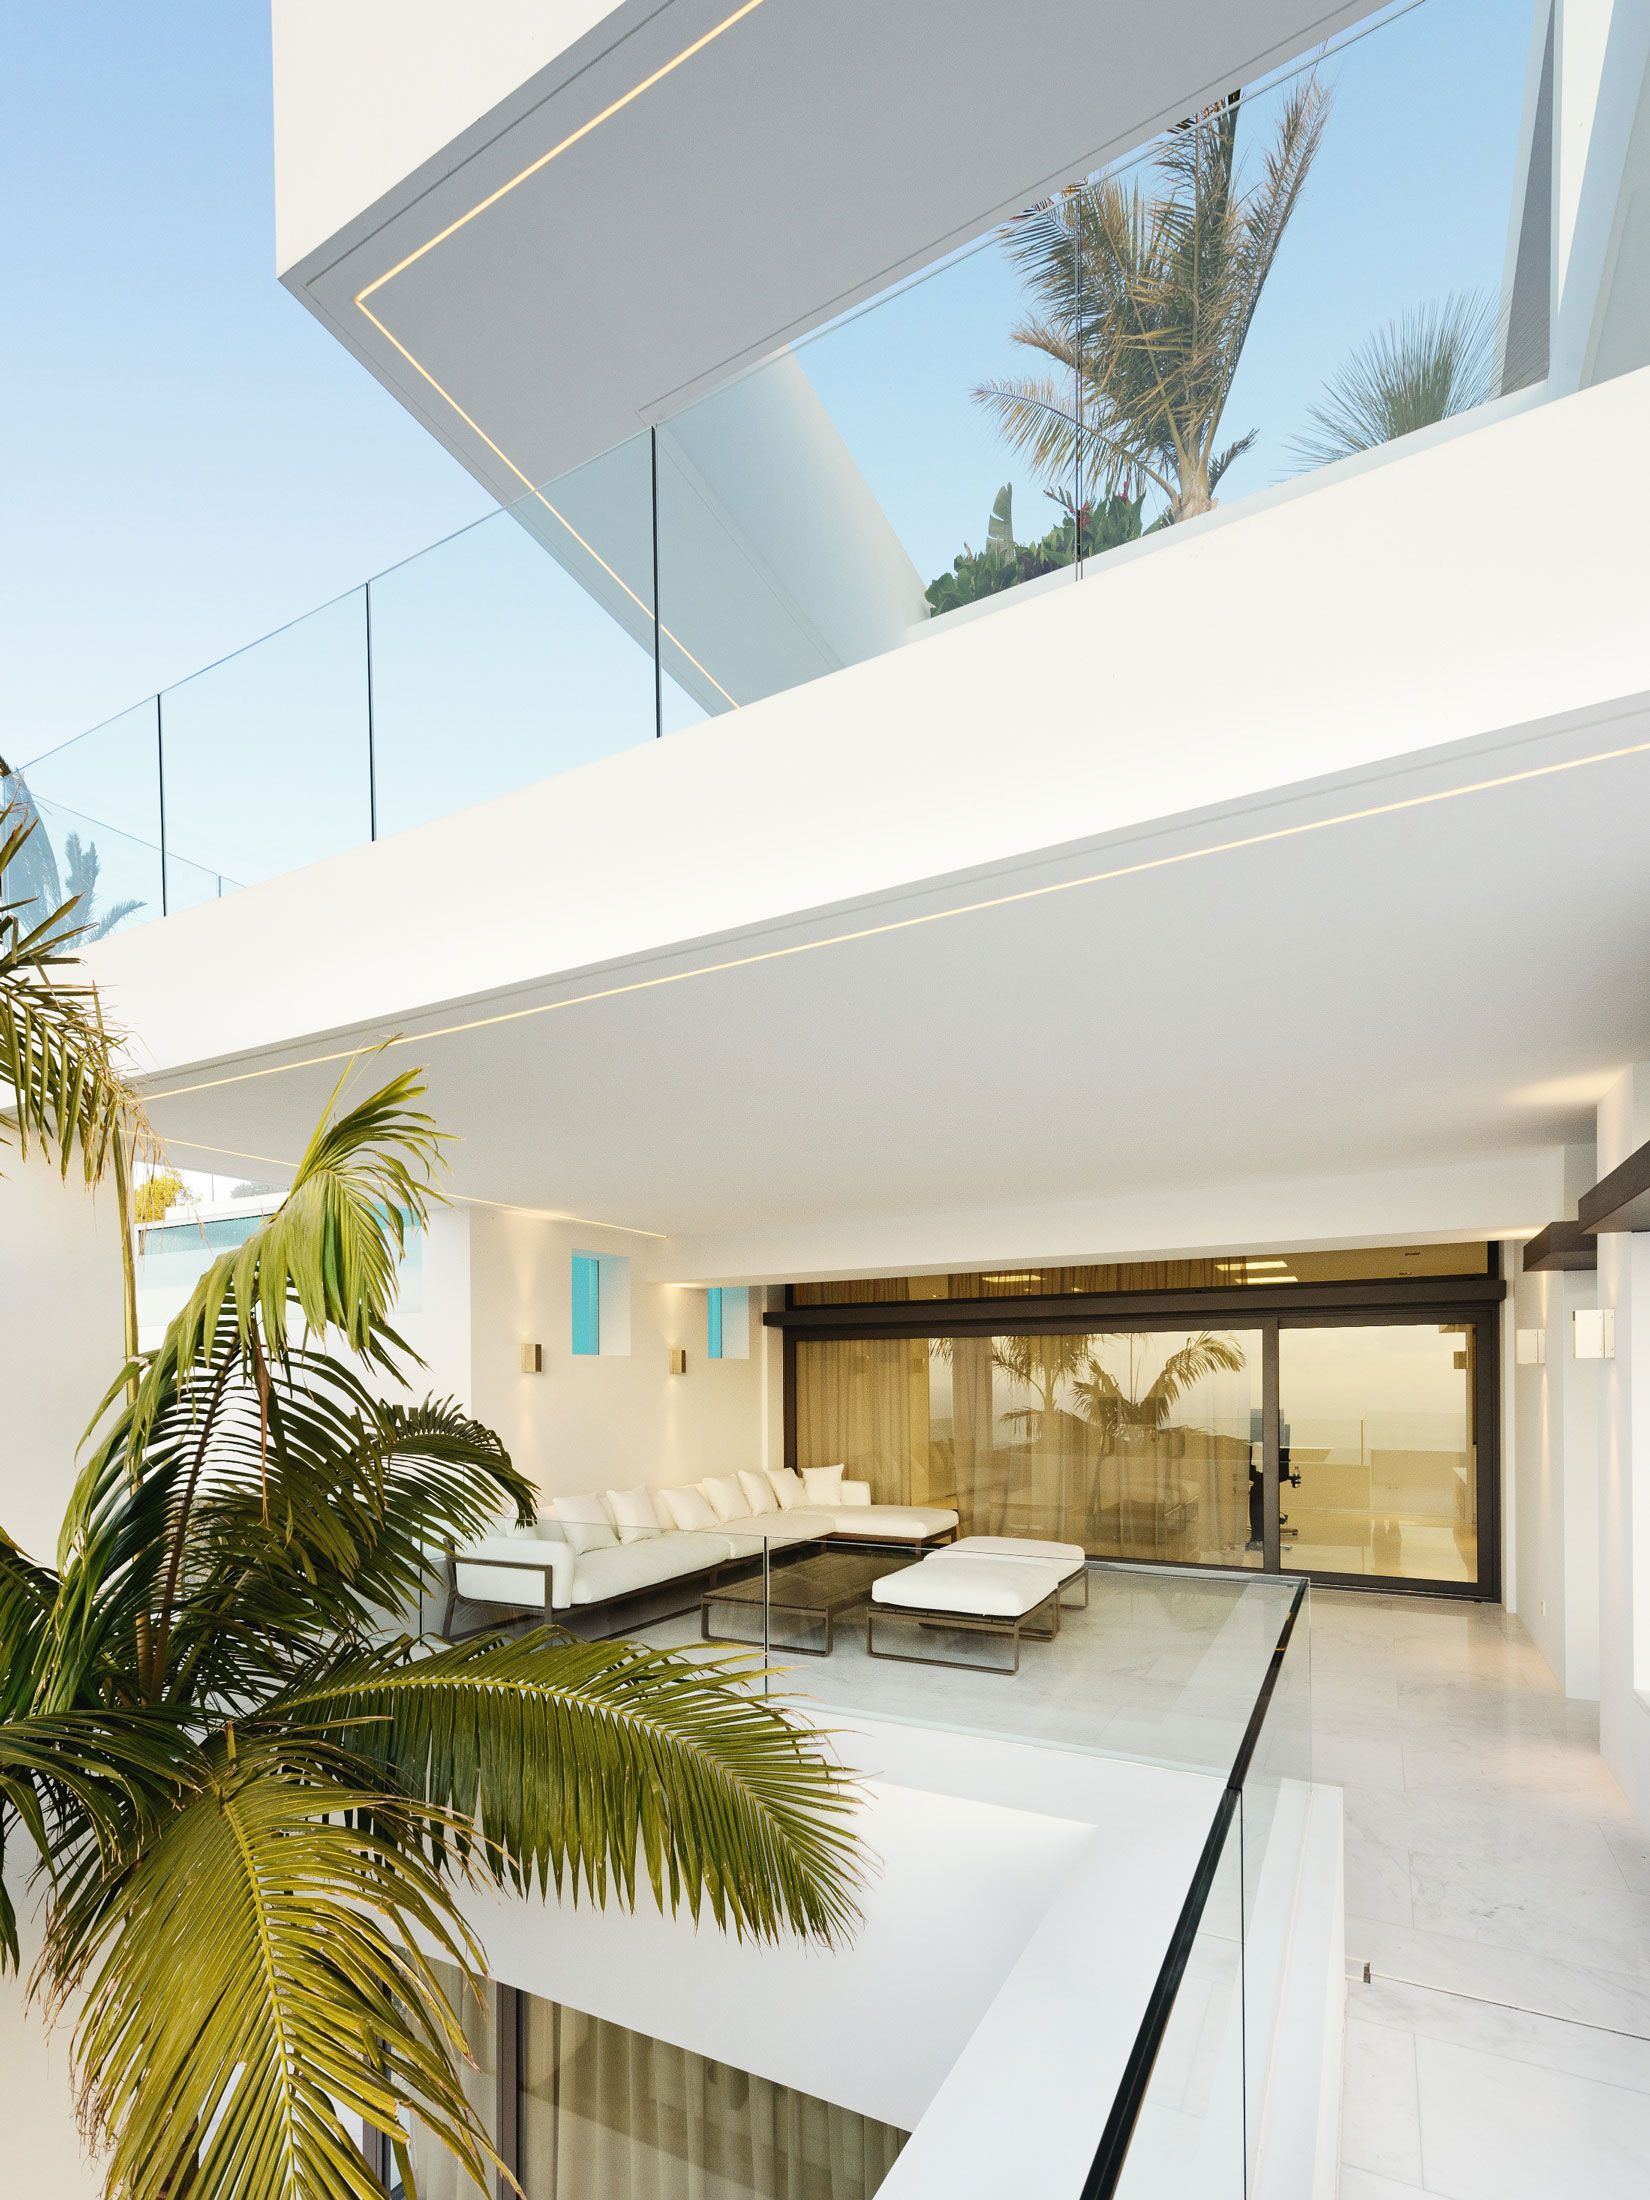 Breathtaking Cliff house design in white scheme featuring exterior living space with marble floor glass wall and fence as well as greenery.jpg